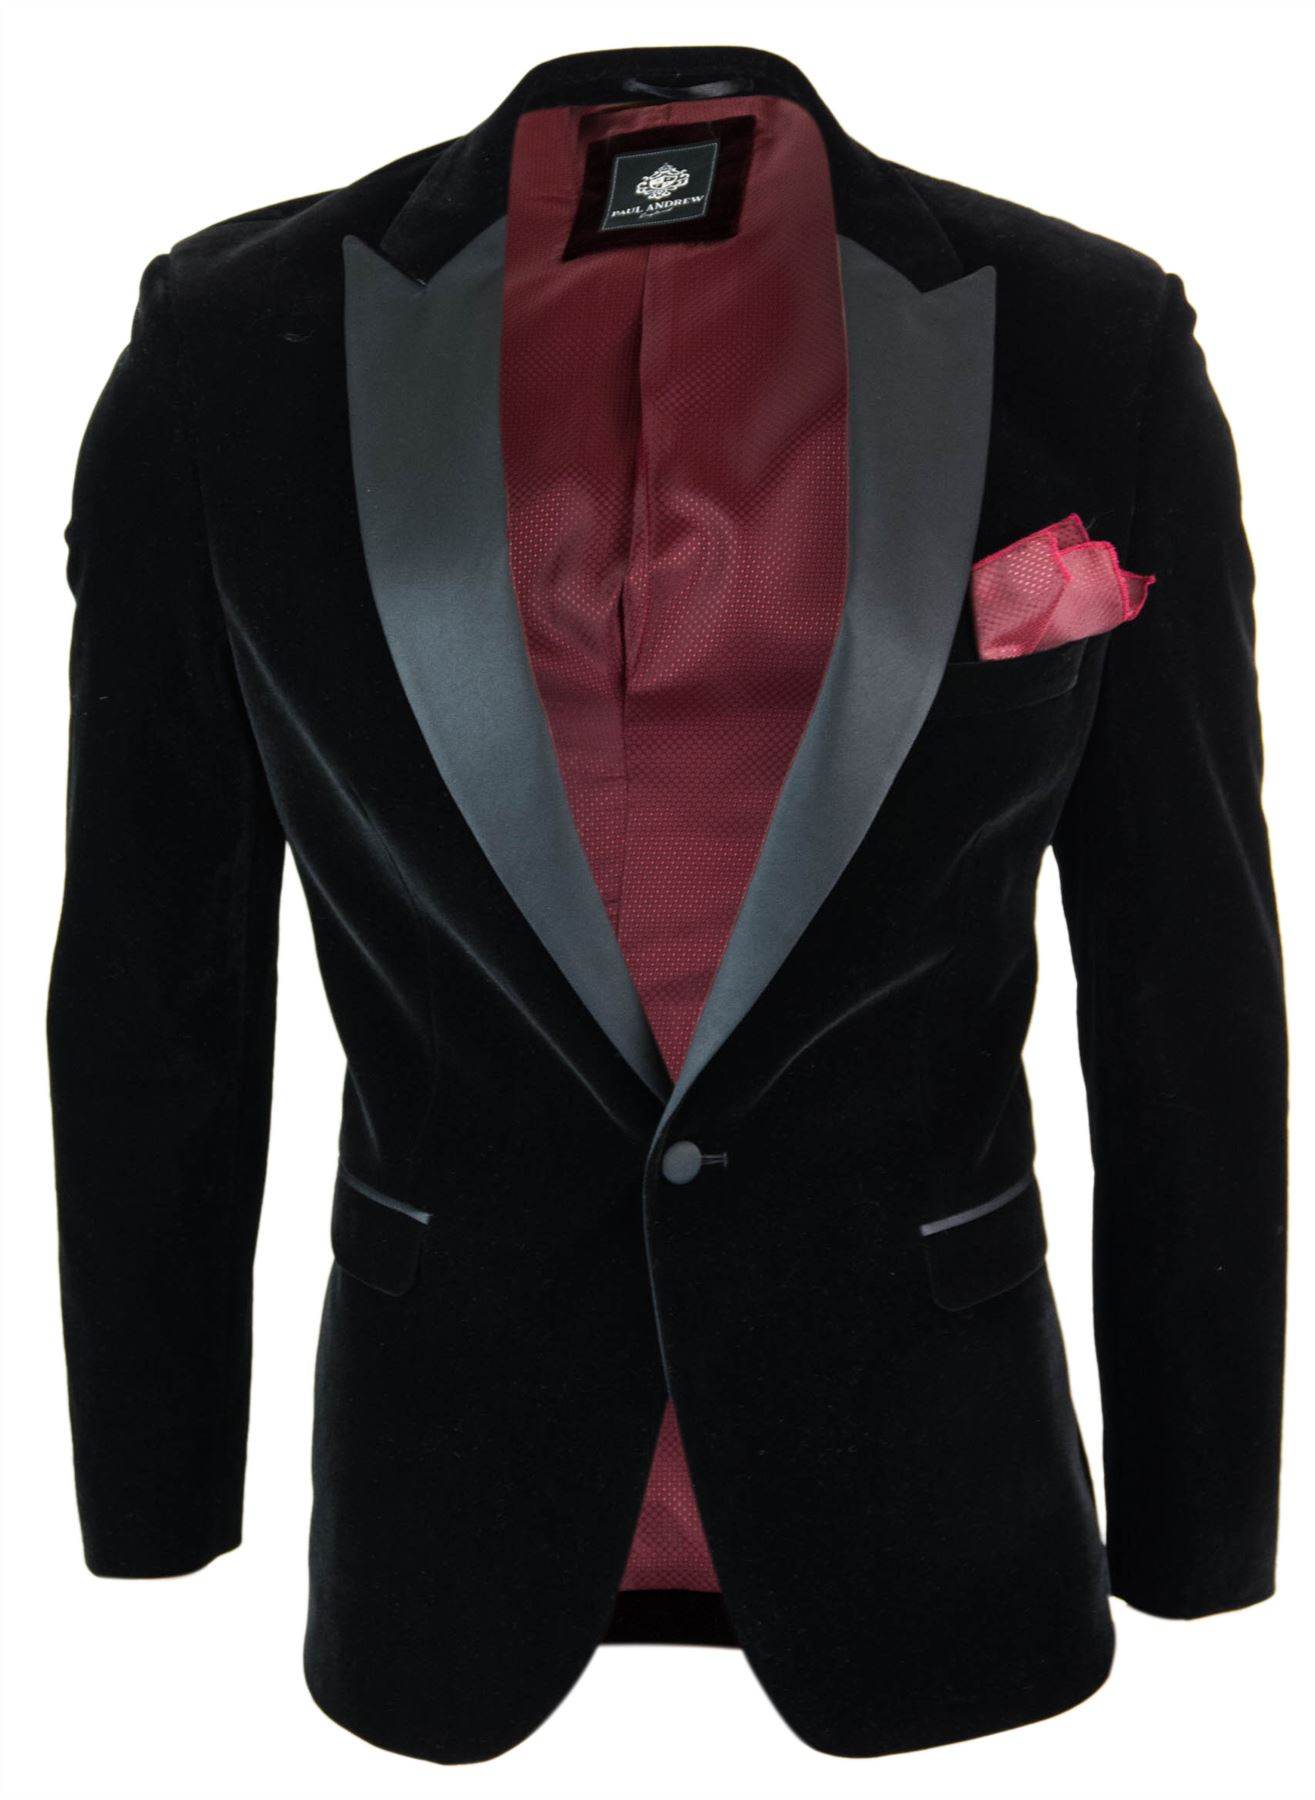 Nouvelles Arrivées divers styles haut de gamme pas cher Details about Mens black velvet blazer soft formal chic style wedding  holidays evenings- show original title